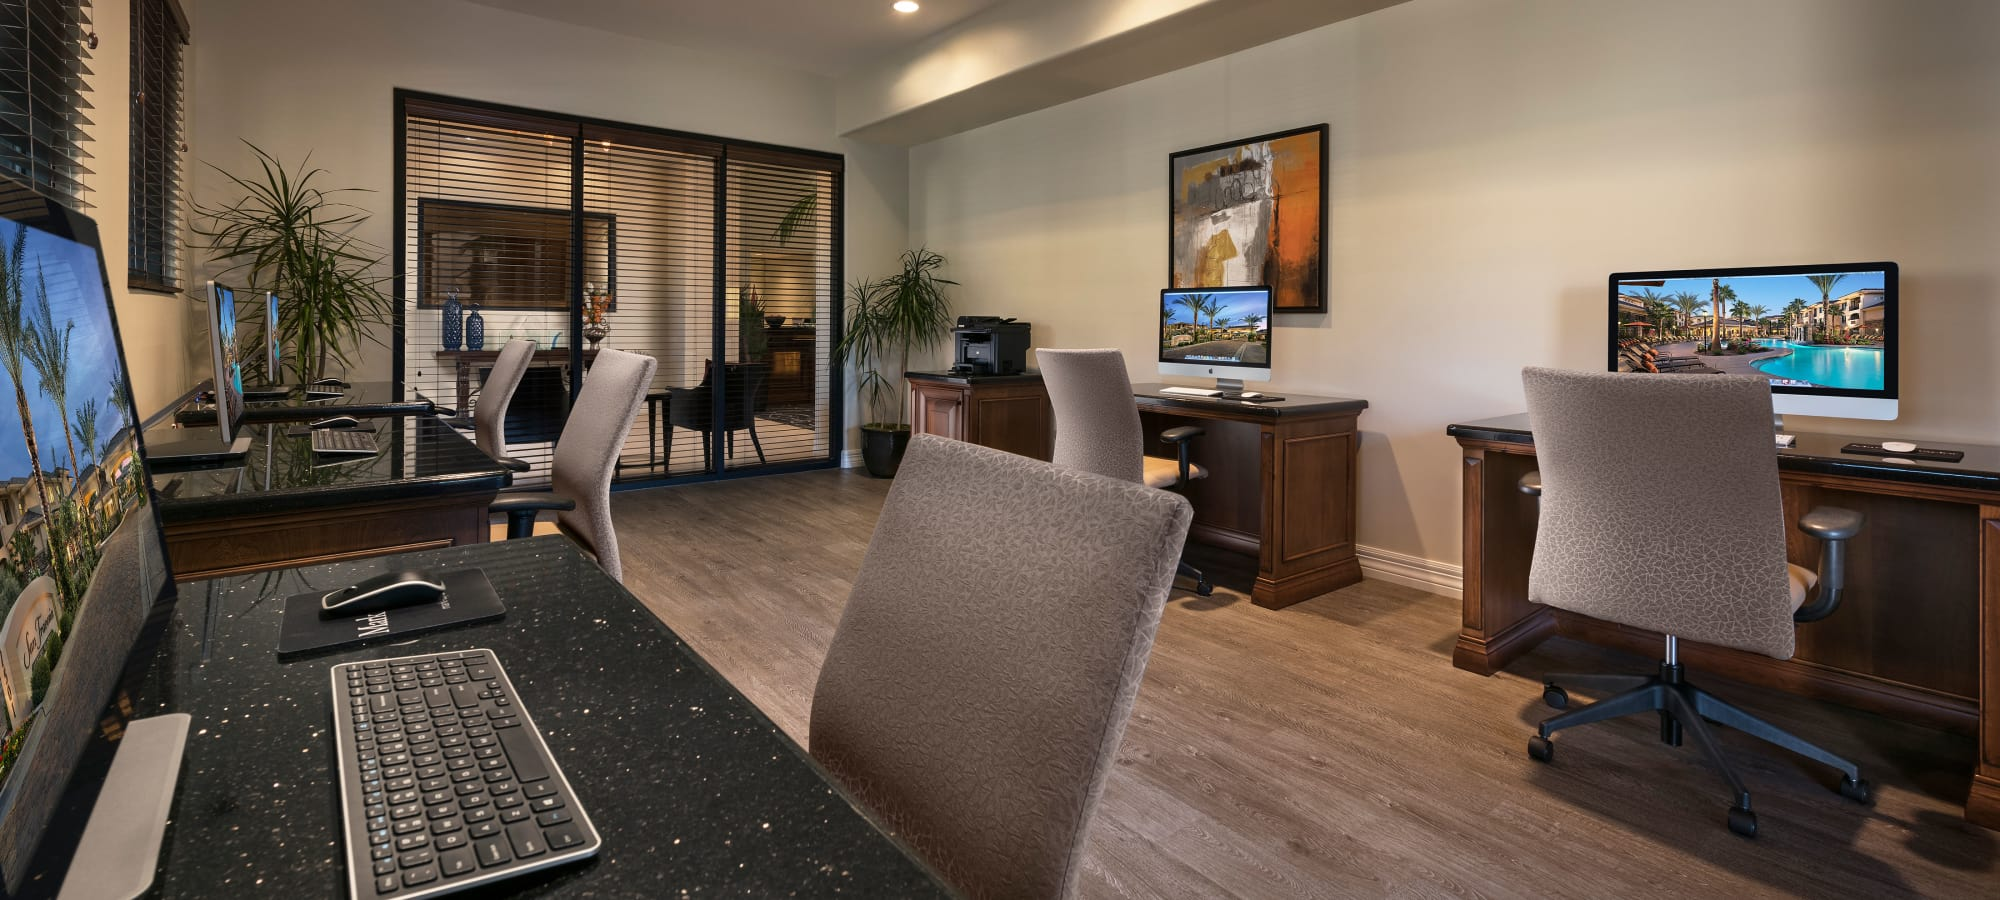 Business center with computers for resident use at San Travesia in Scottsdale, Arizona